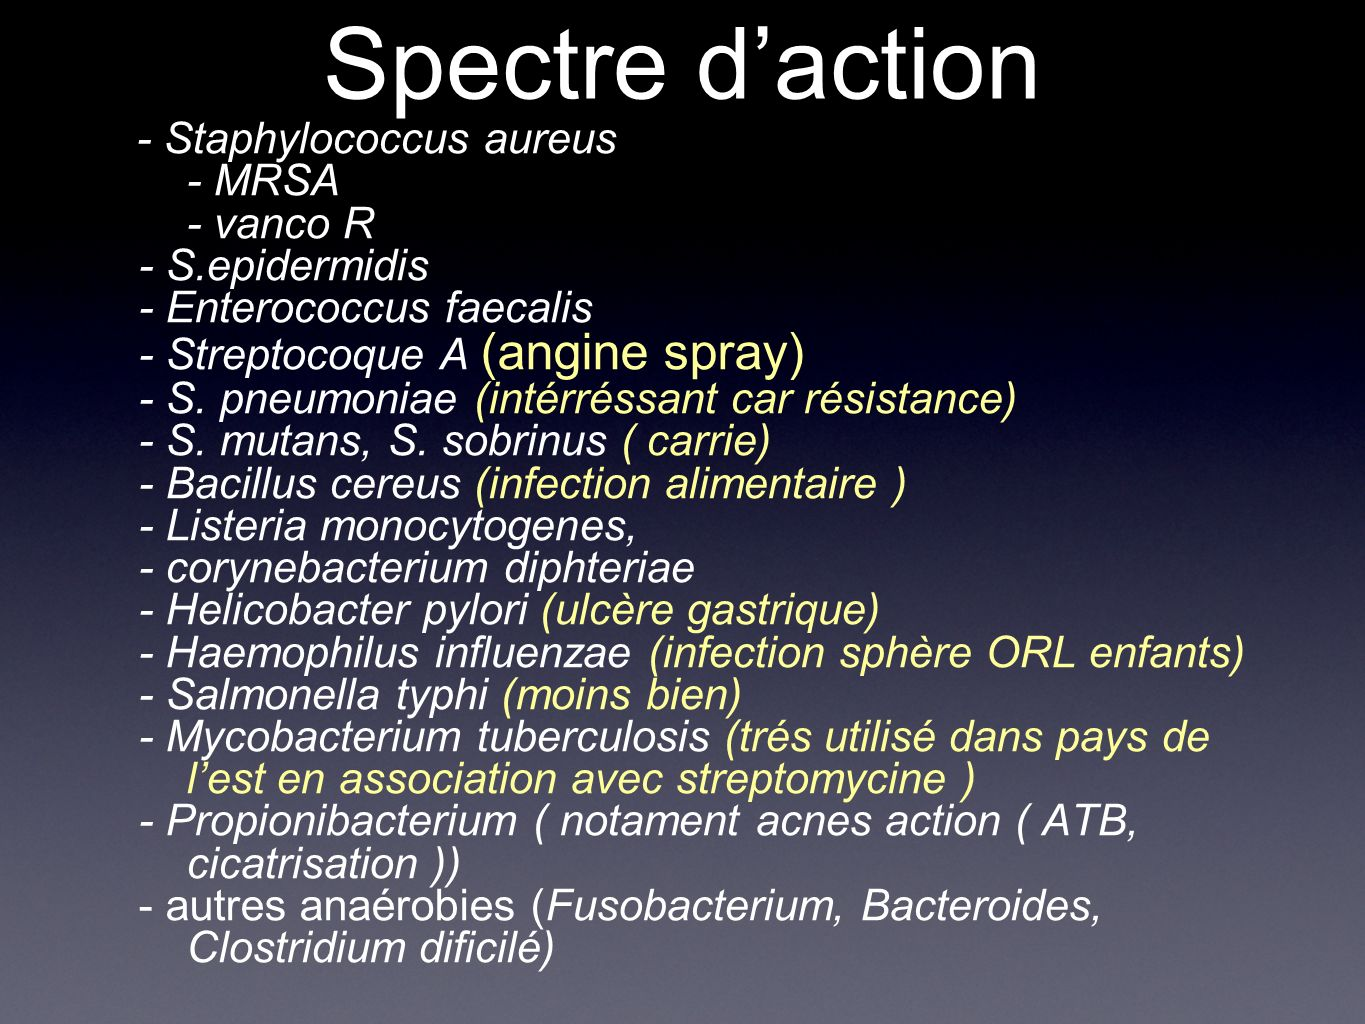 Spectre d'action - MRSA - vanco R - S.epidermidis